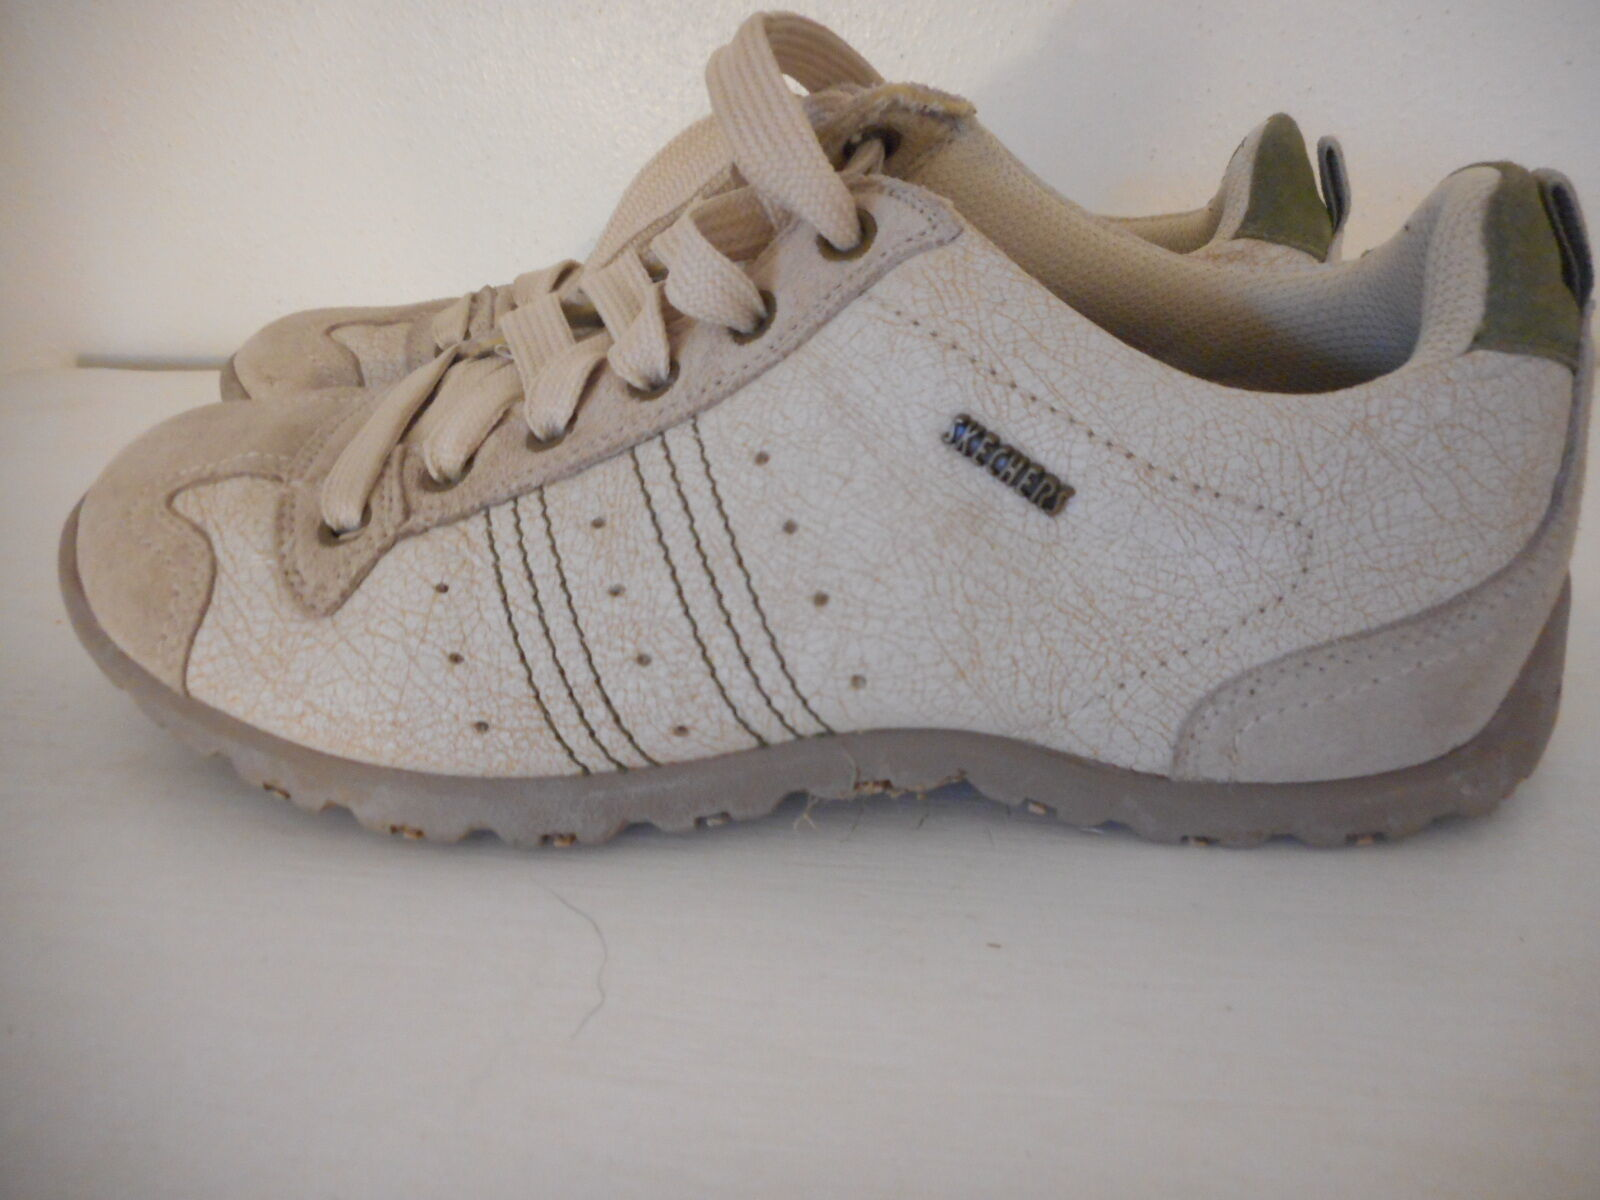 Skechers Sz 9 Womens Beige Athletic Shoes Sneakers Leather upper lace up image 4